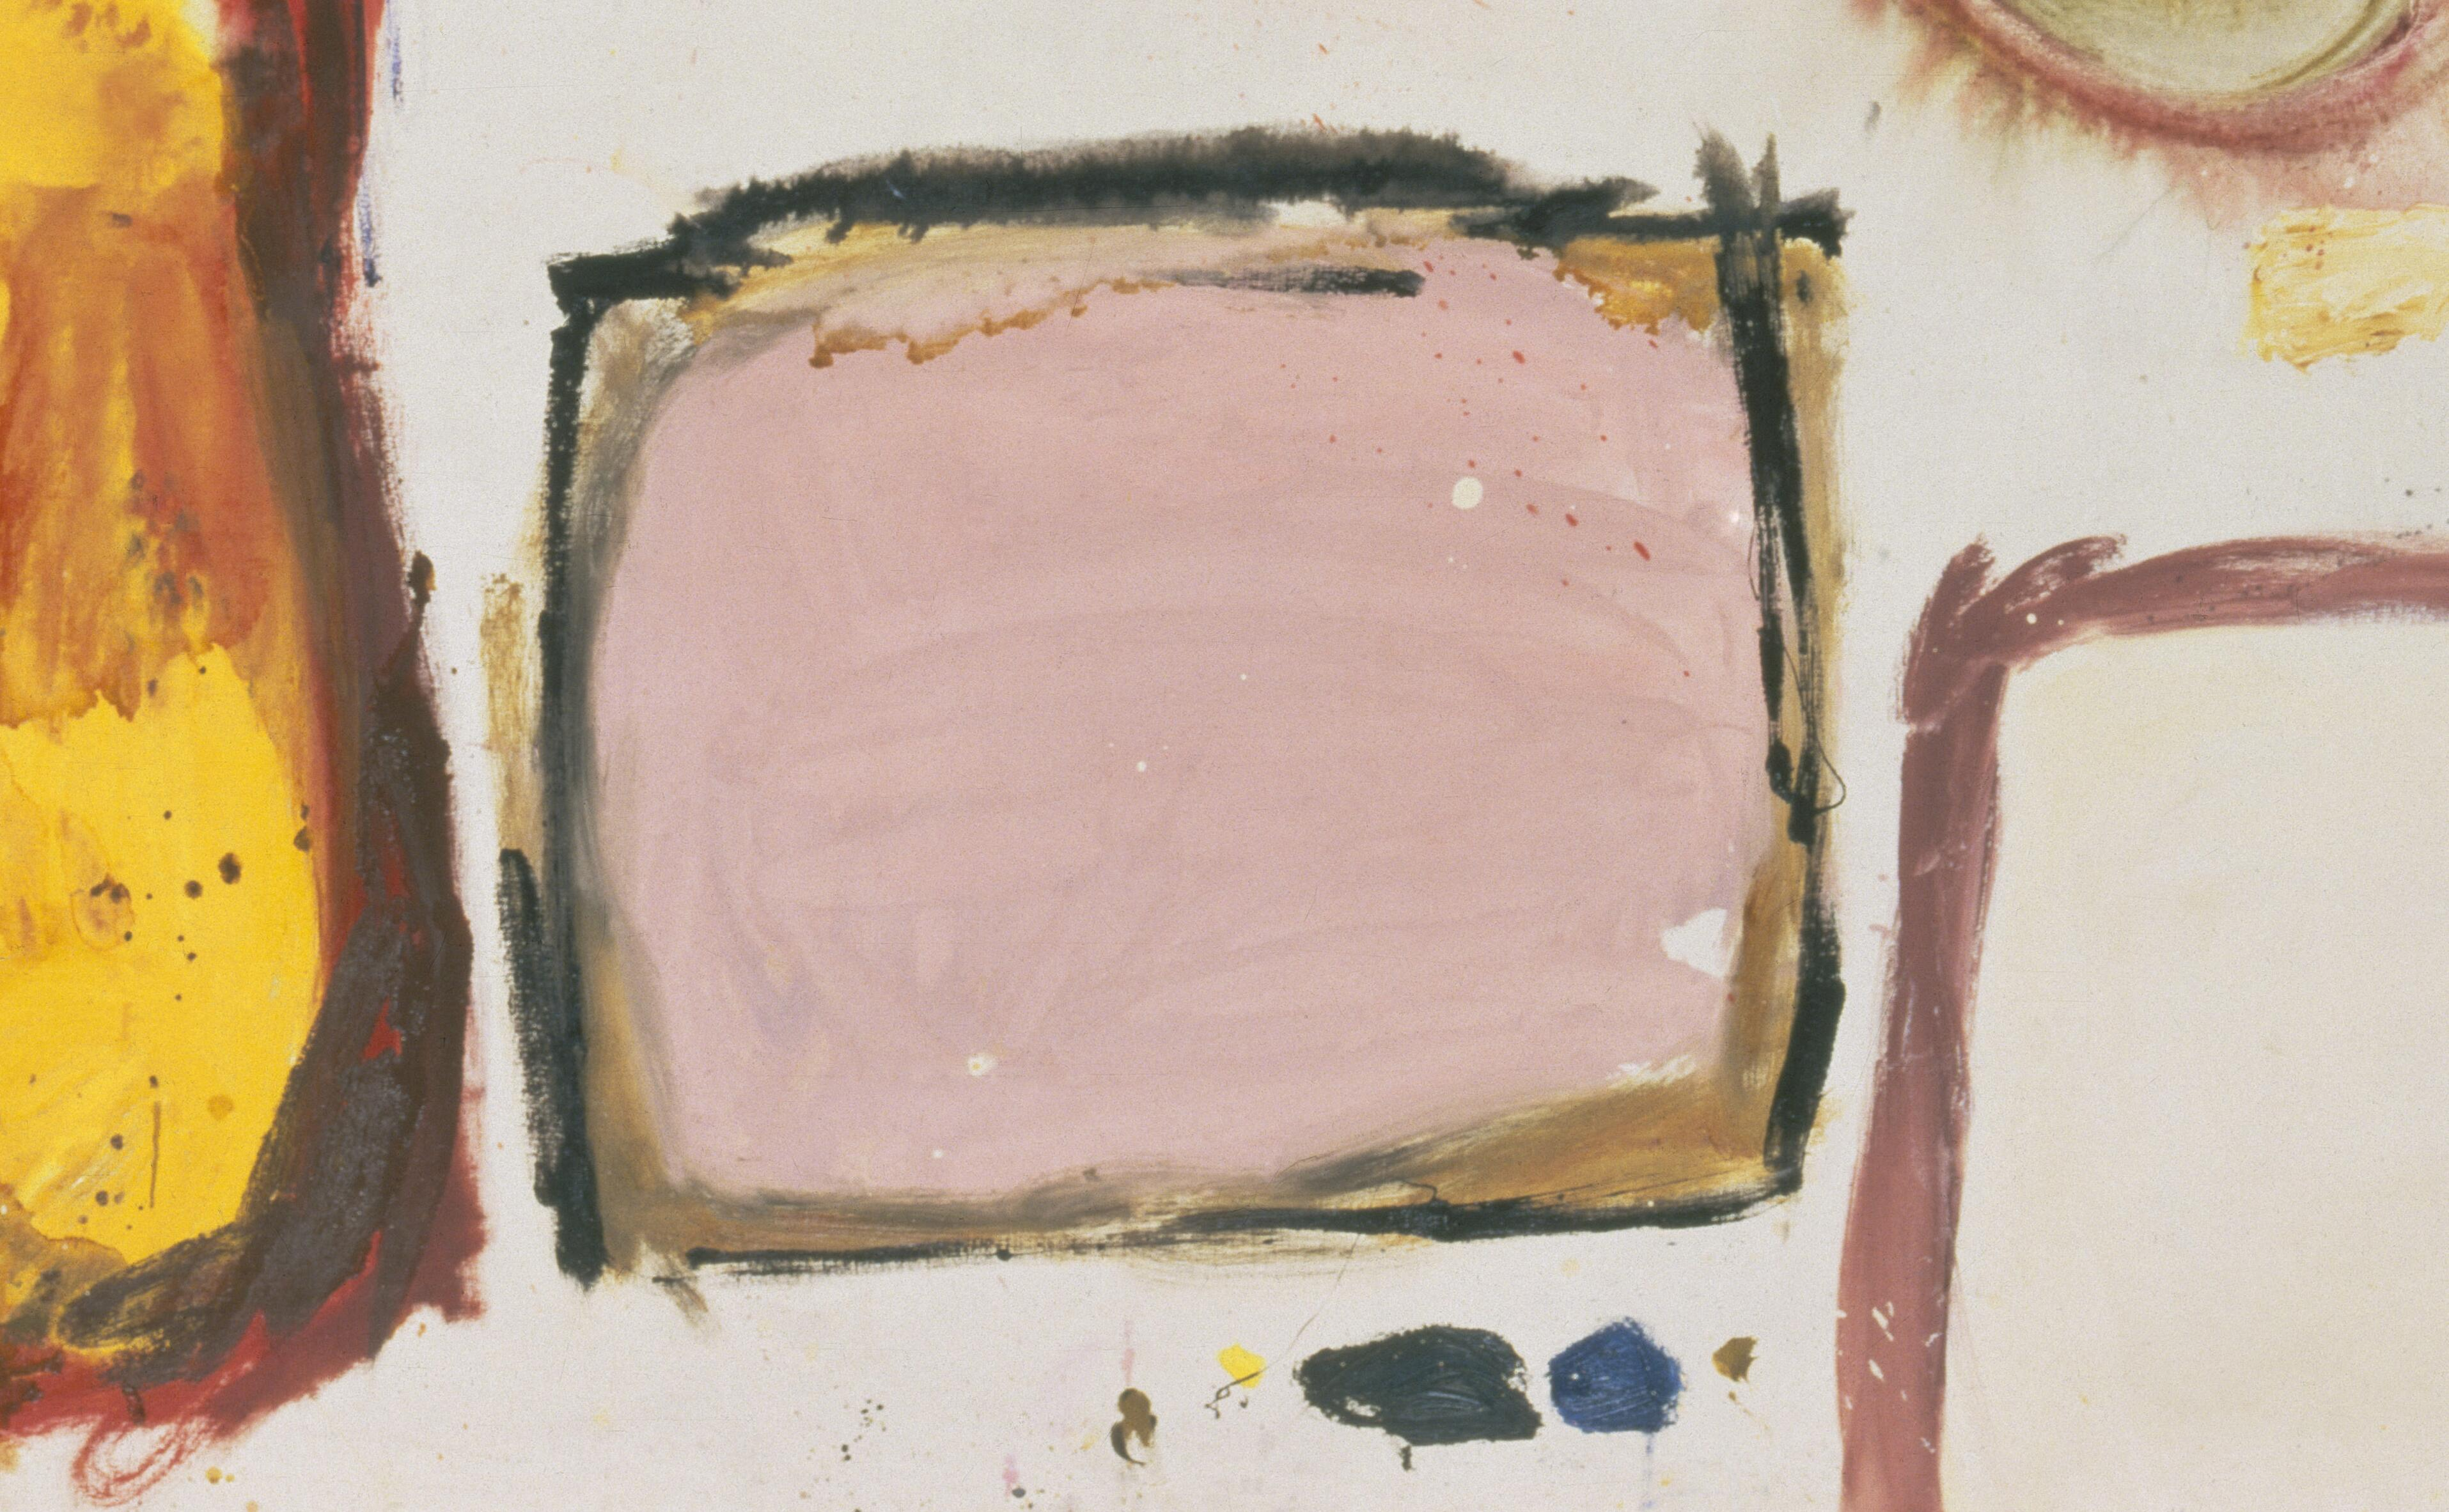 Gillian Ayres, <i> Break-off</i>, 1961, oil on canvas, 152.4 x 304.8 cm. Collection of Tate, London (T01715). Digital image courtesy of Estate of Gilliam Ayres | Photo Tate (All rights reserved).